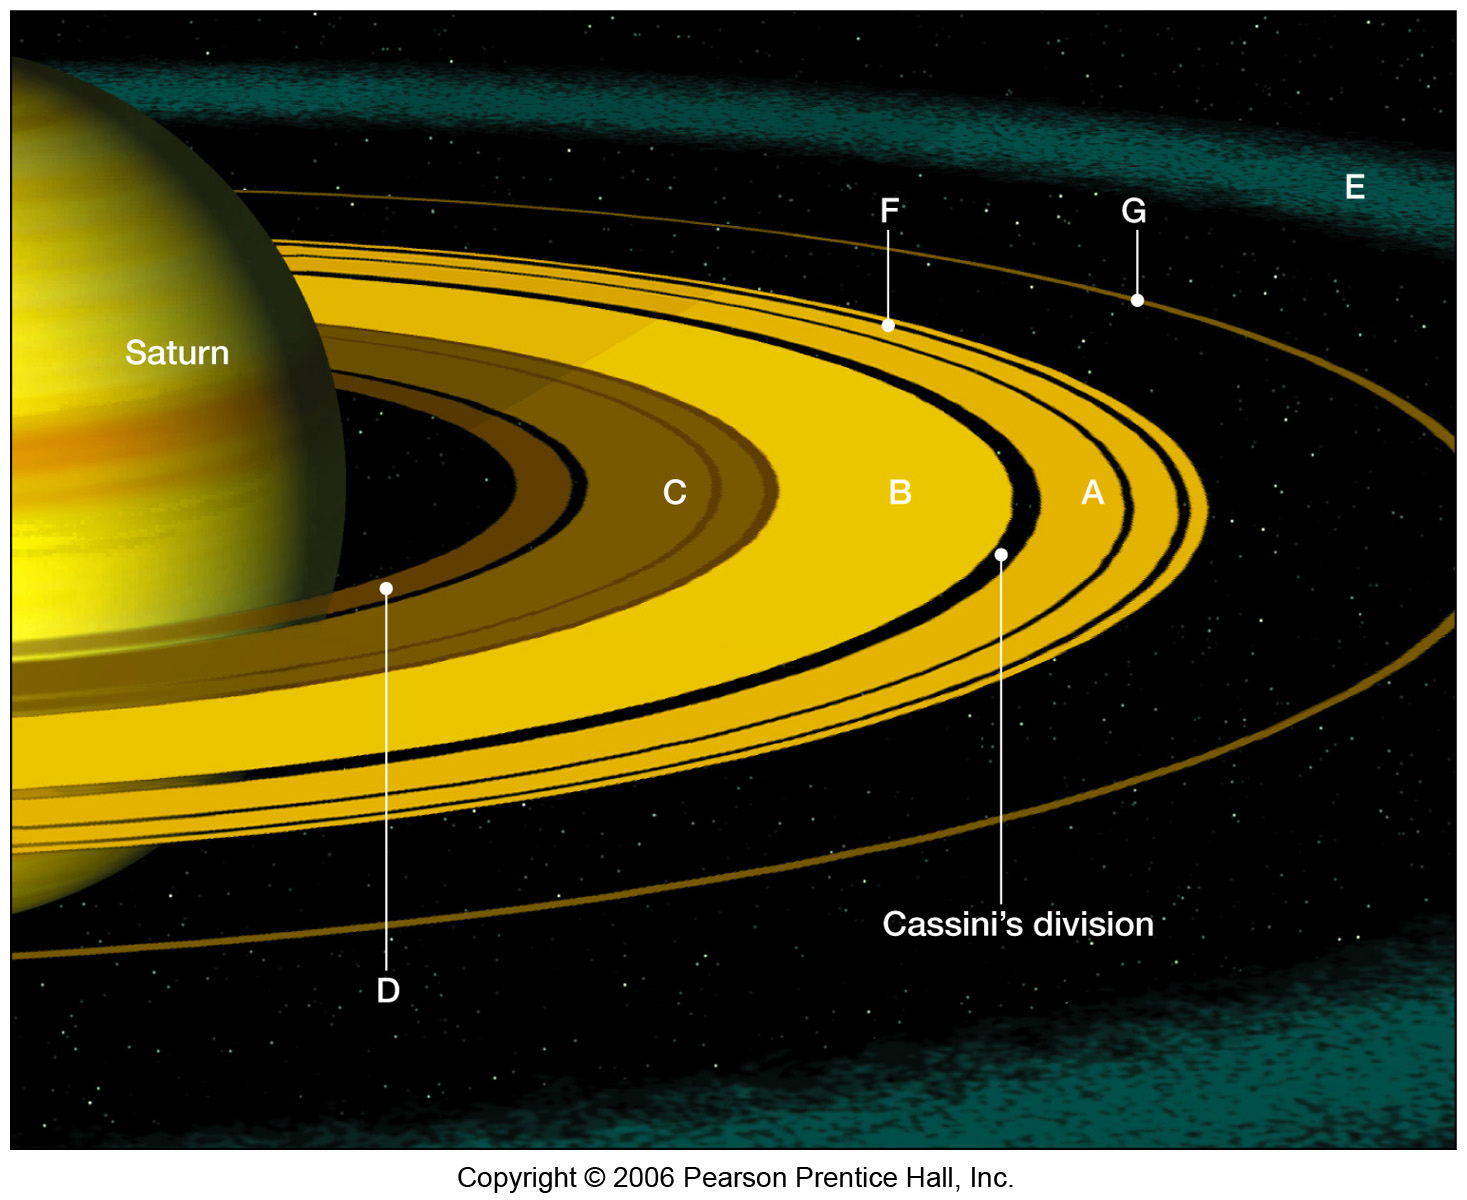 information about saturn